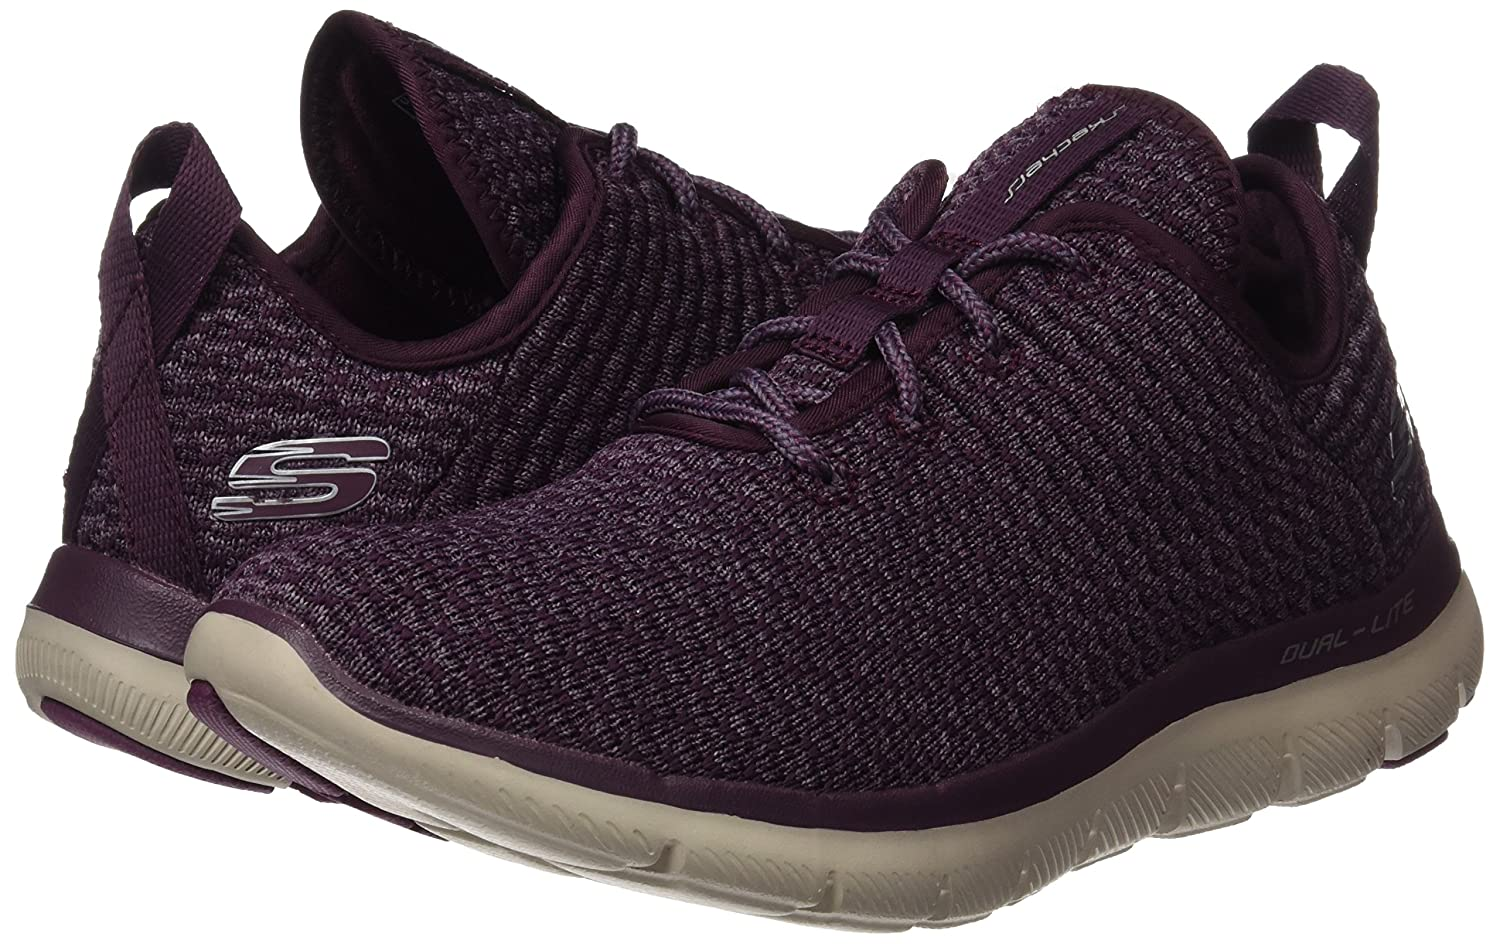 Skechers Sport Bold Women's Flex Appeal 2.0 Bold Sport Move Fashion Sneaker B01MS9R15S 5 B(M) US|Plum 0f794f